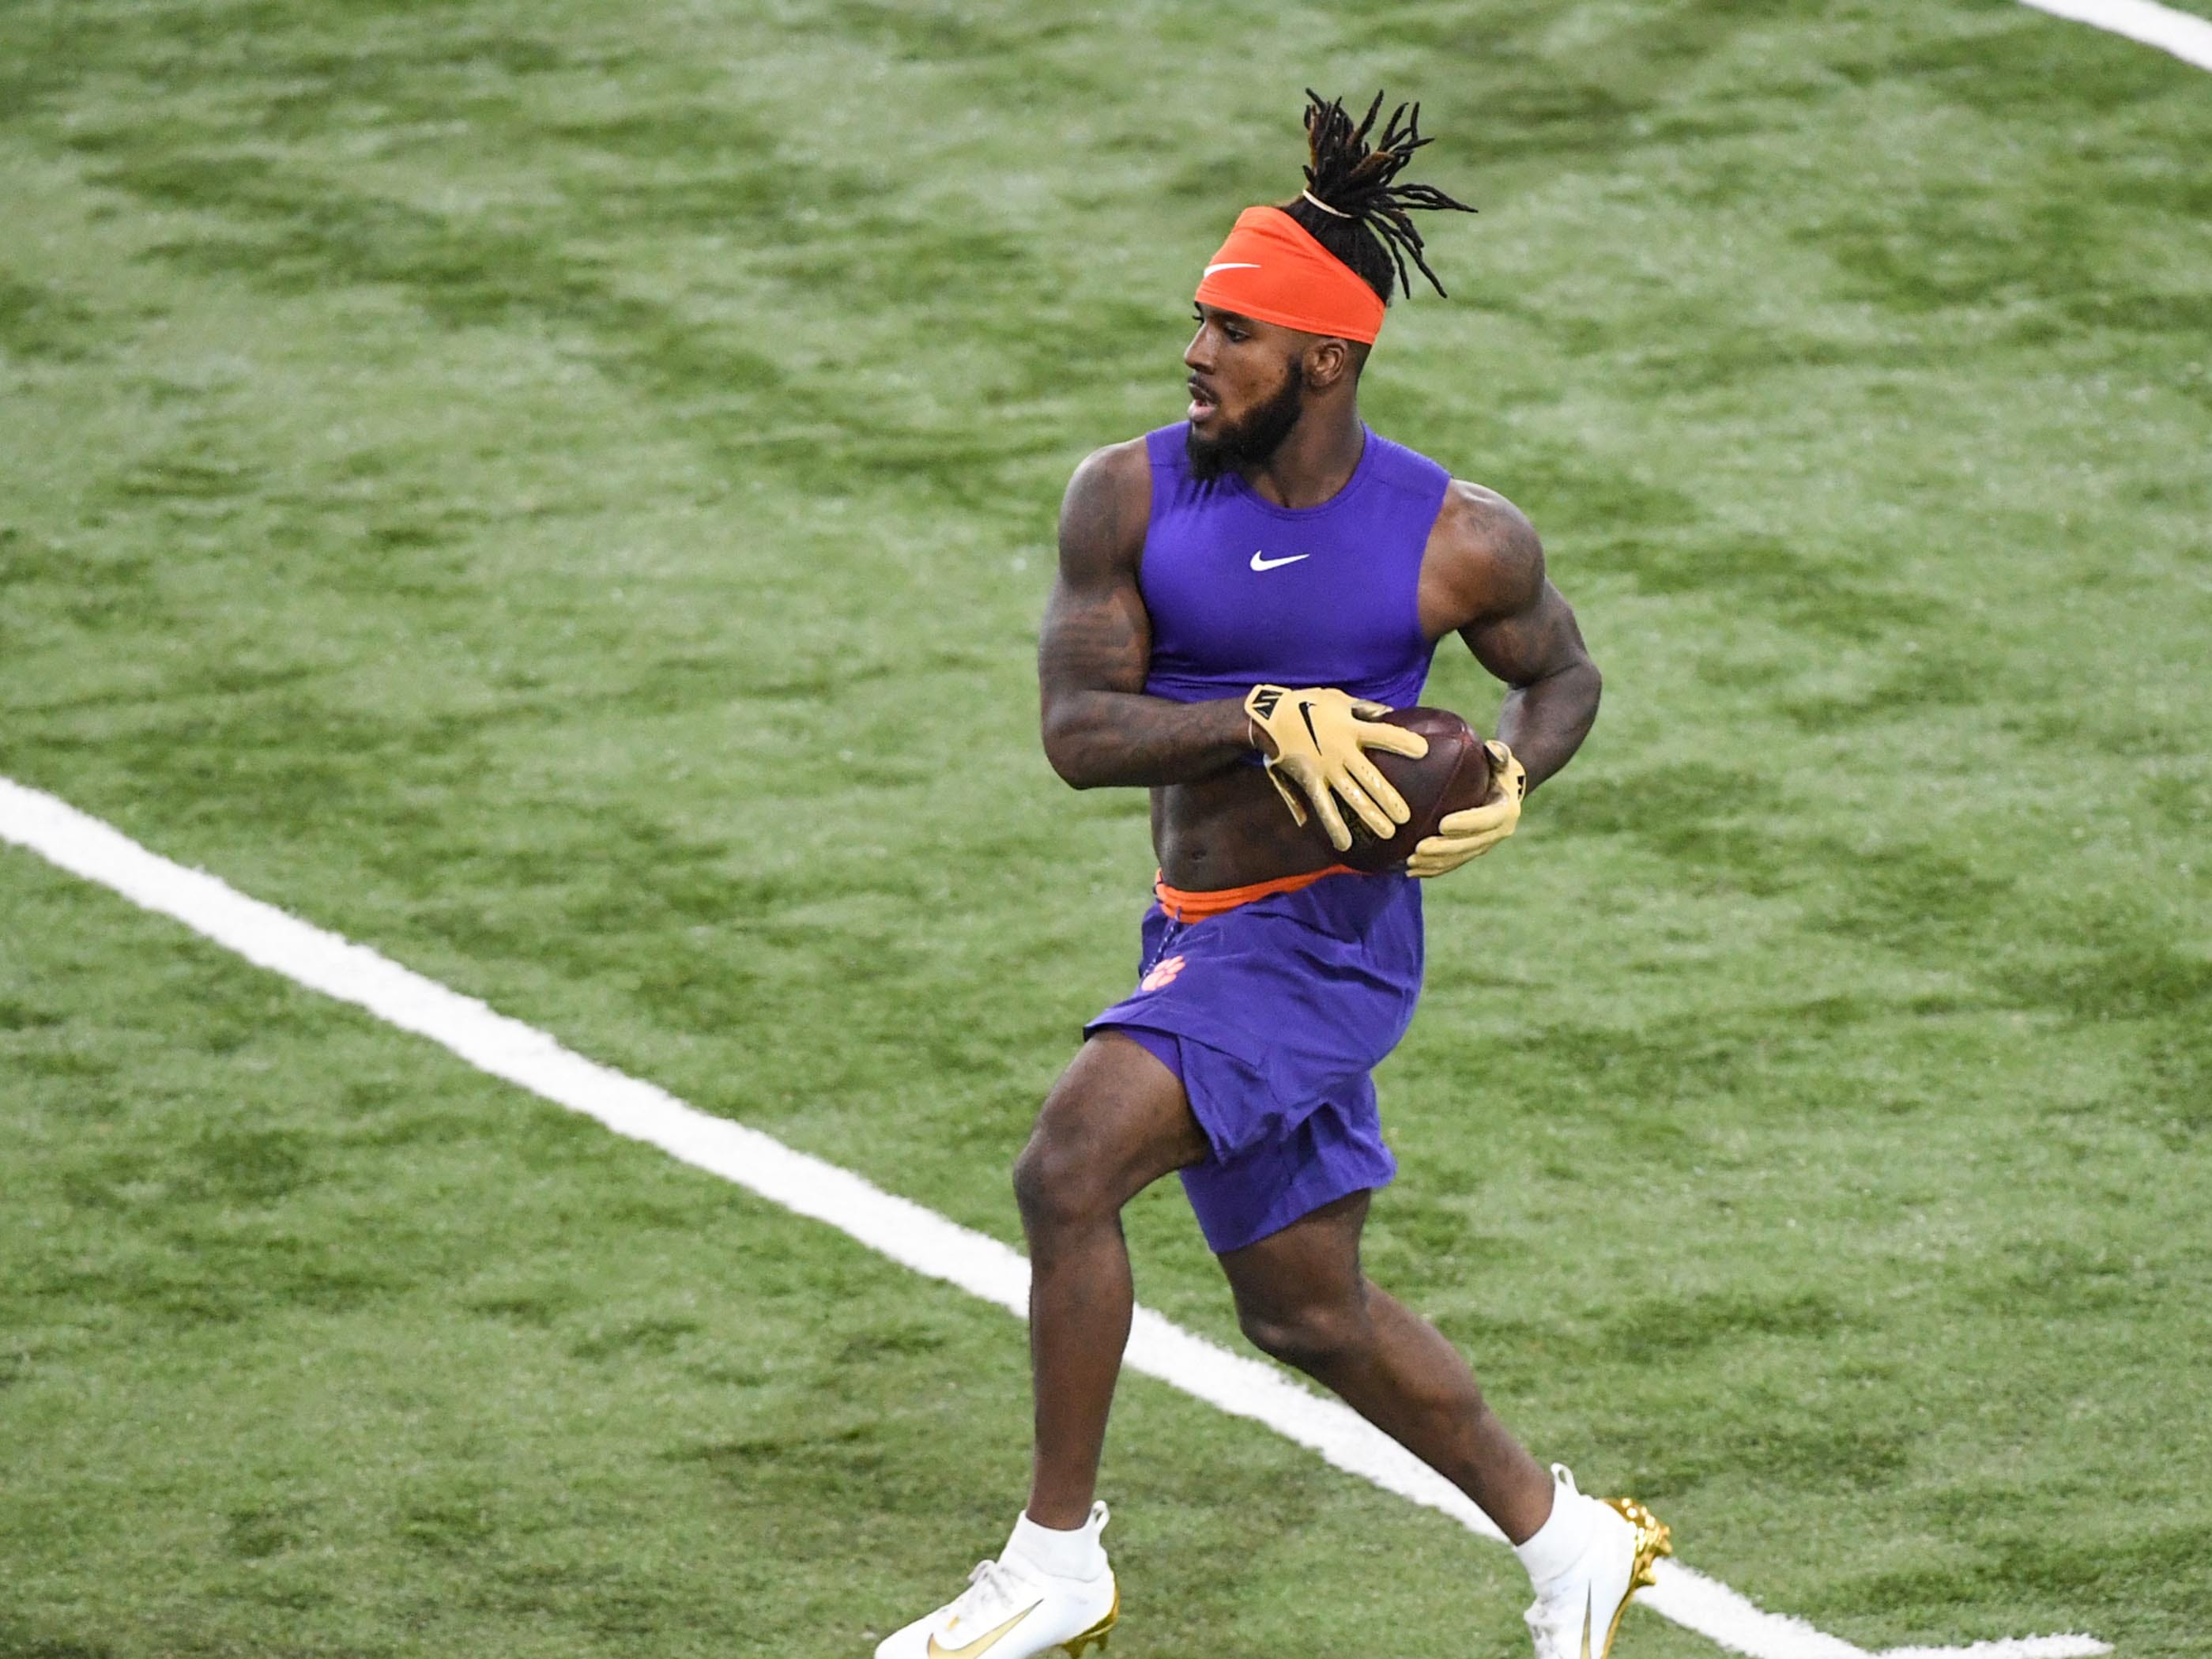 Cornerback Mark Field II catches a ball during Clemson pro day at the Poe Indoor Facility in Clemson Thursday, March 14, 2019.